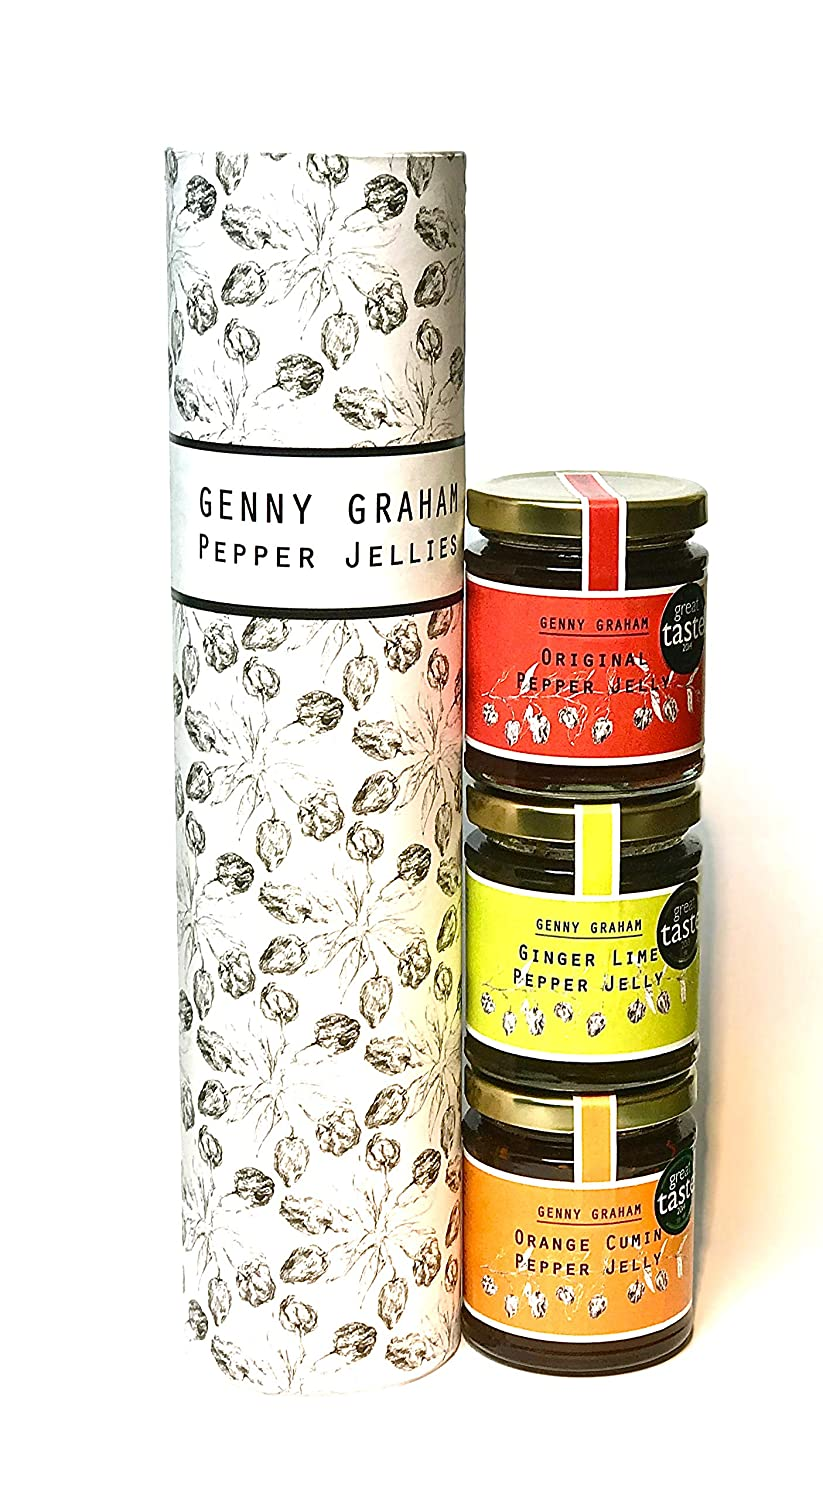 Genny Graham Pepper Jelly Mixed Flavours Gift Pack Amazoncouk